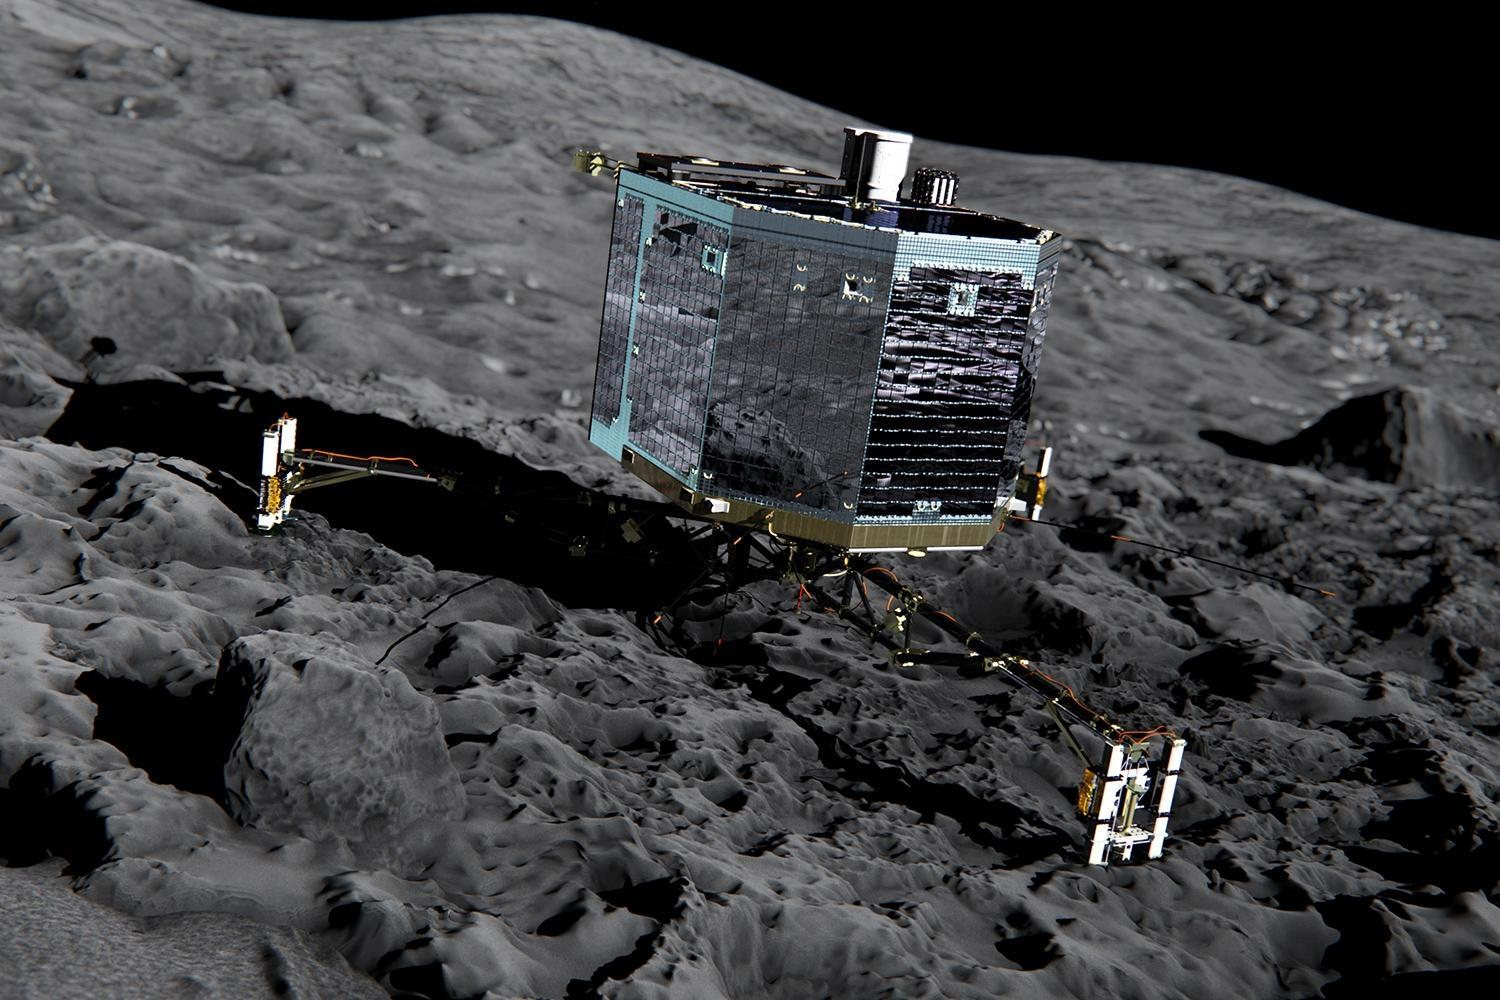 The DLR space agency says its final farewell to the Philae lander